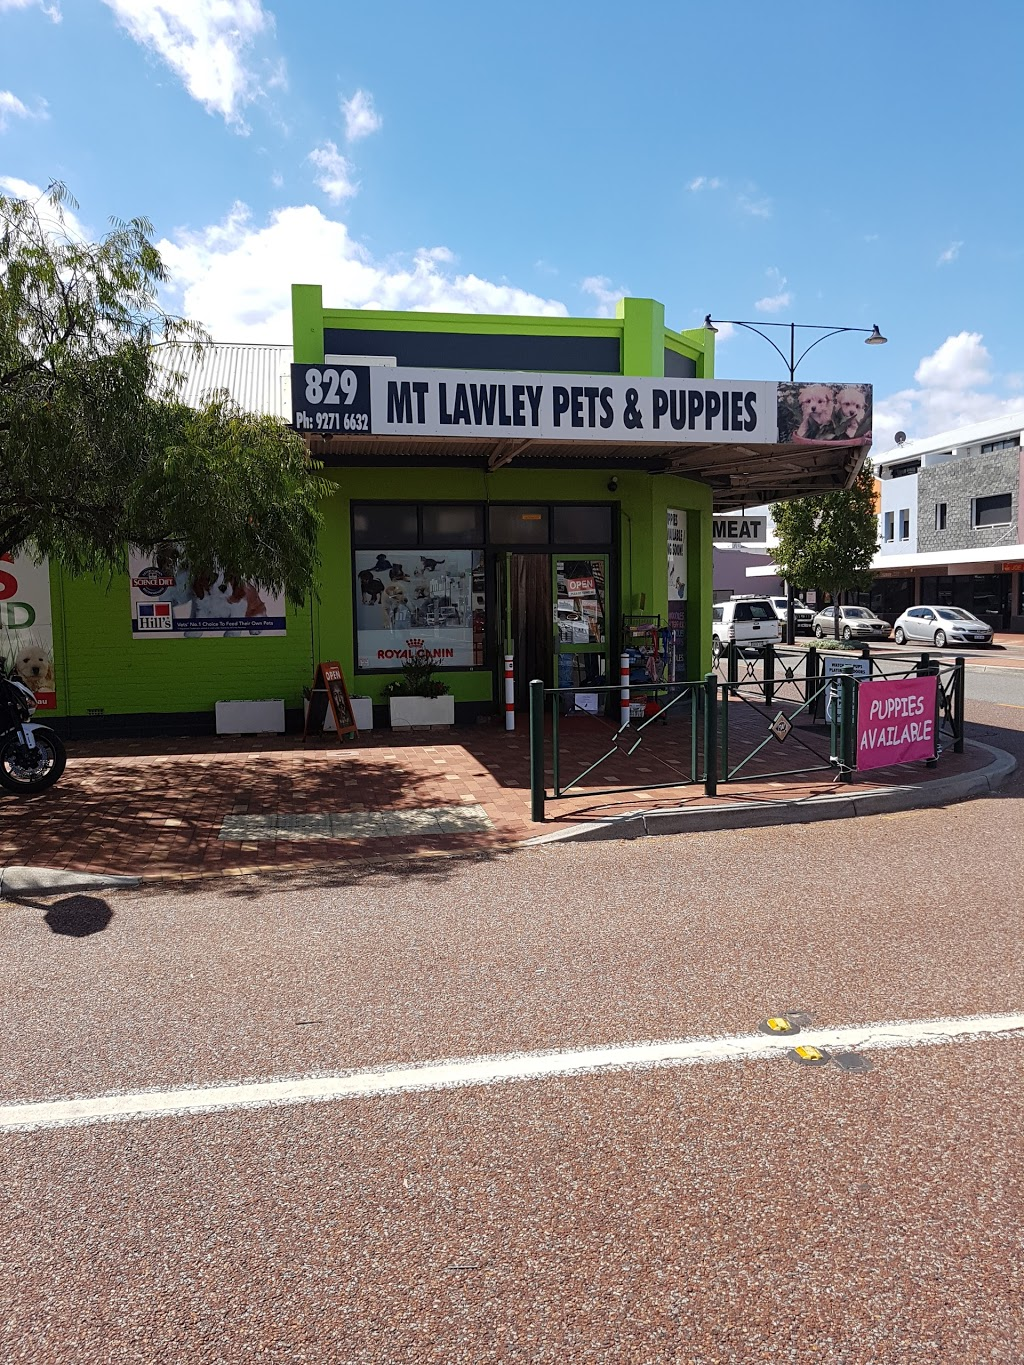 Mt Lawley Pets & Puppies | pet store | 829 Beaufort St, Inglewood WA 6052, Australia | 0892716632 OR +61 8 9271 6632